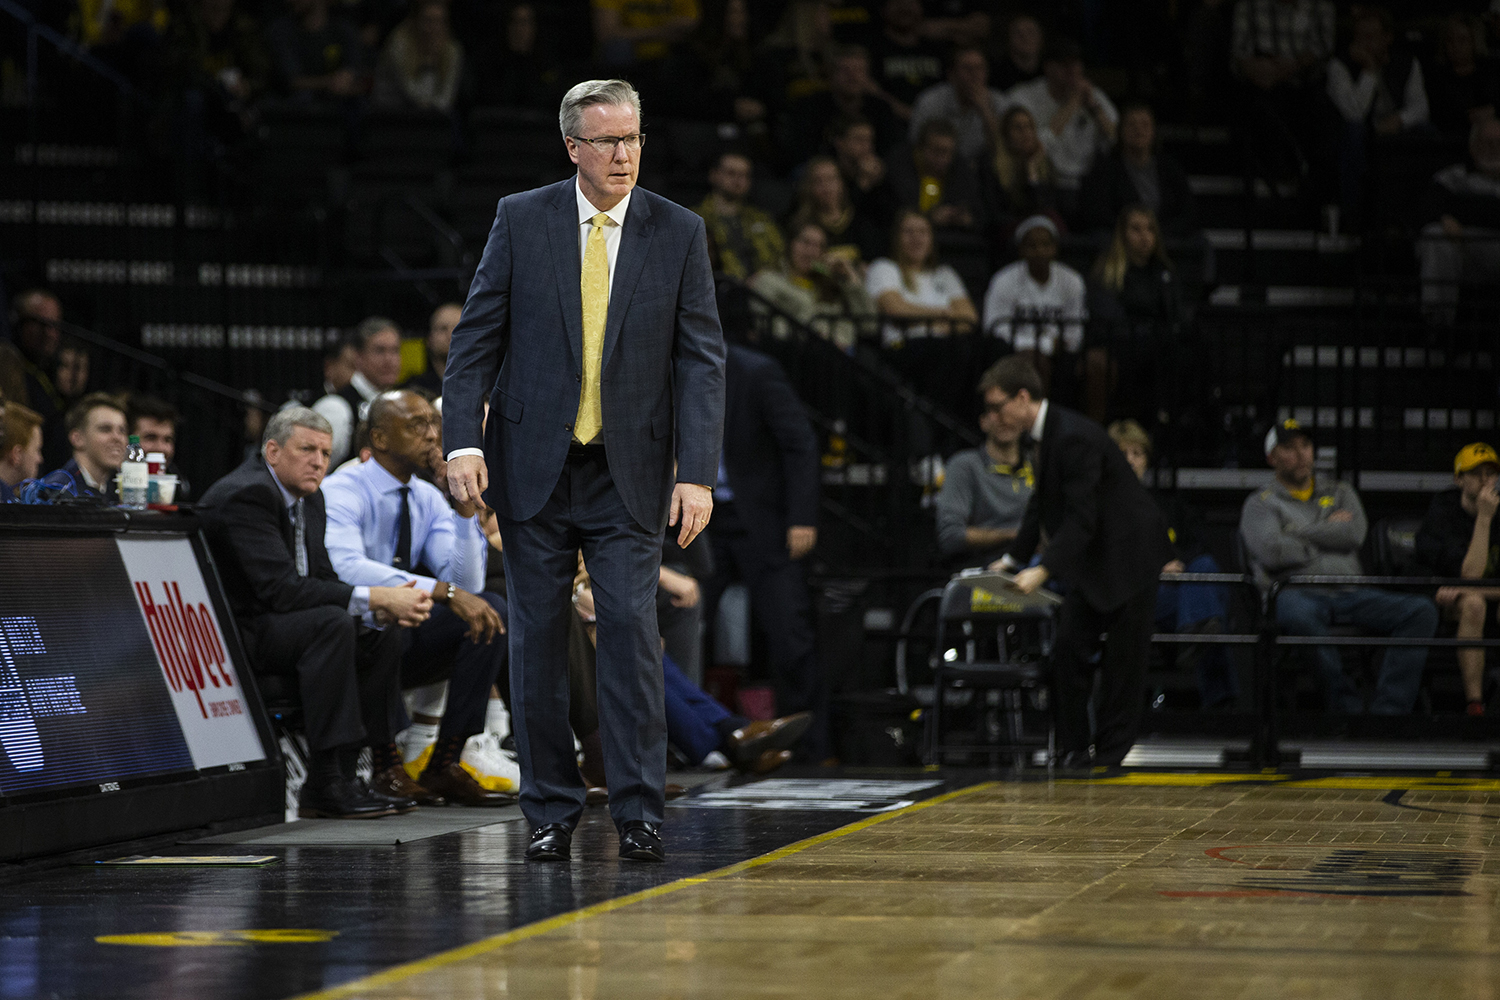 Iowa head coach Fran McCaffery watches the game during the men's basketball game against Western Carolina at Carver-Hawkeye Arena on Tuesday, December 18, 2018. The Hawkeyes defeated the Catamounts 78-60.